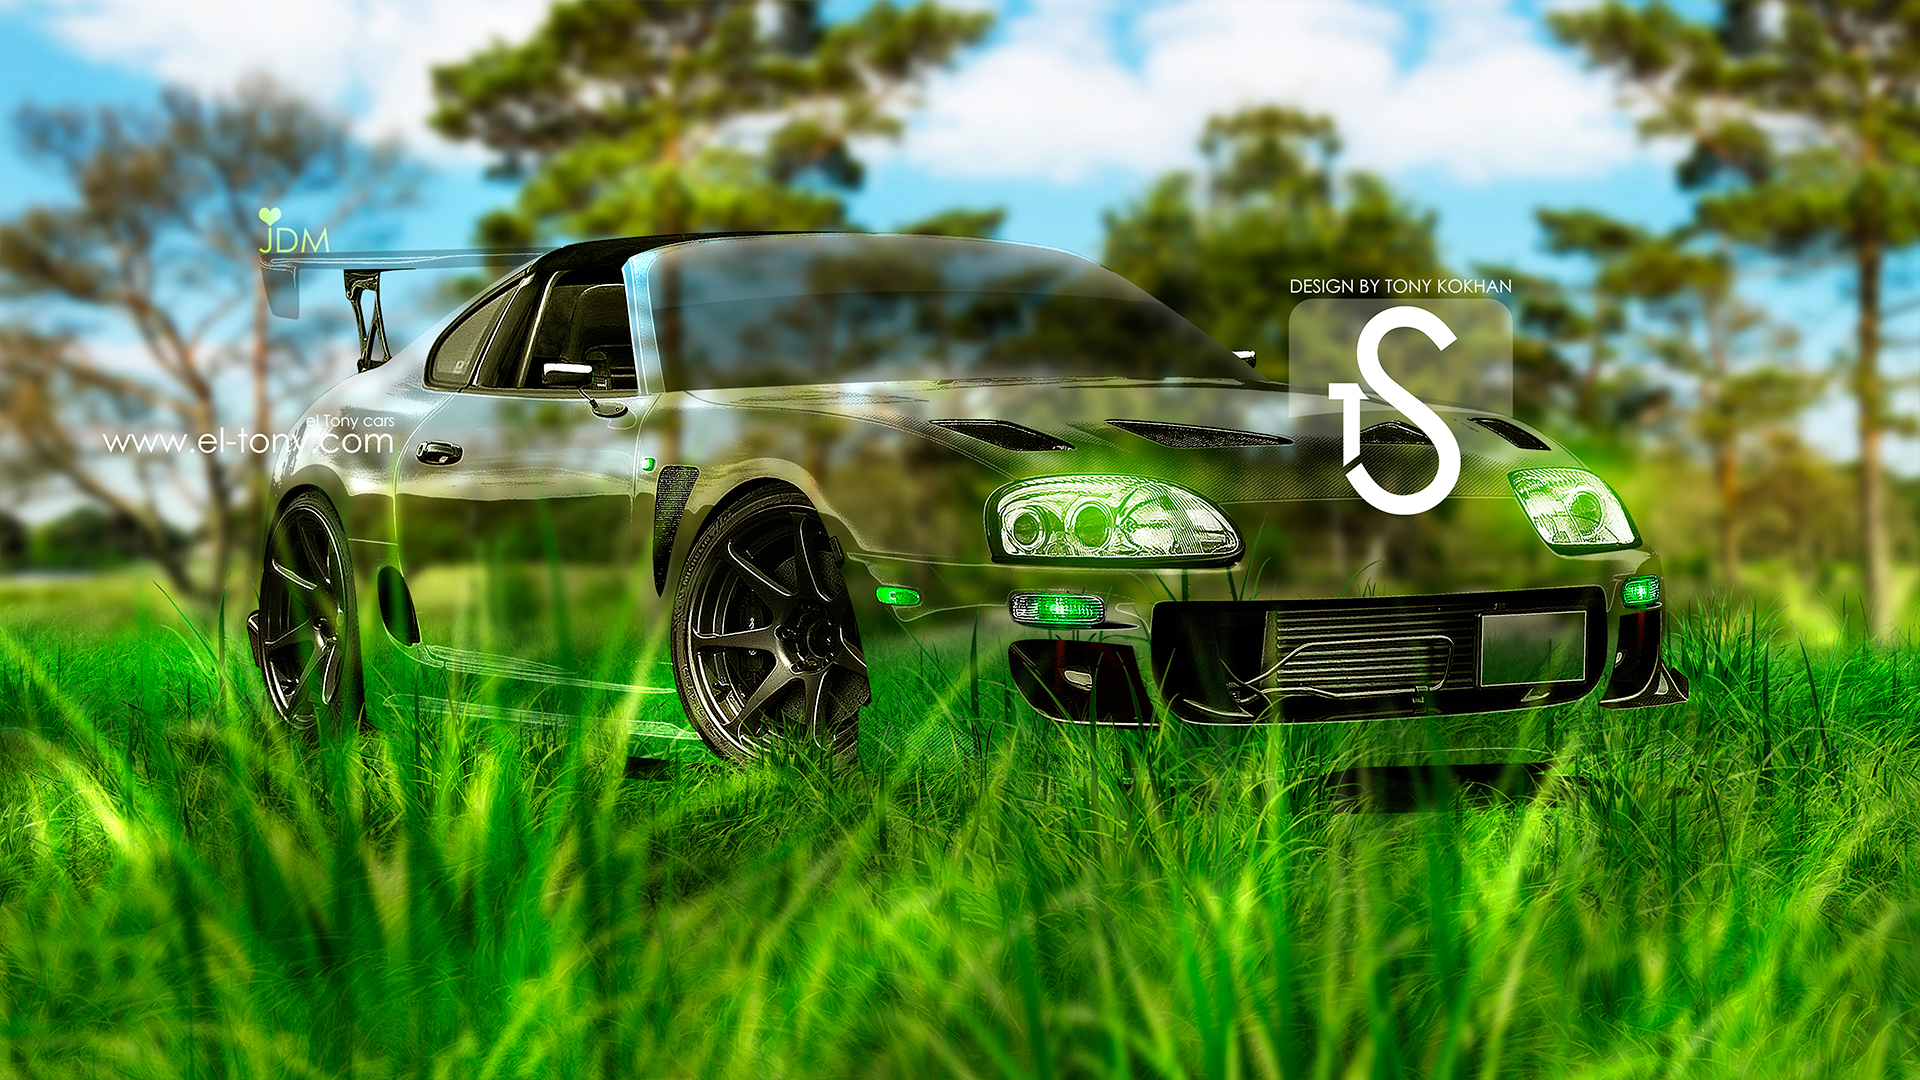 Awesome Toyota Supra JDM Crystal Nature Car 2013 Front .